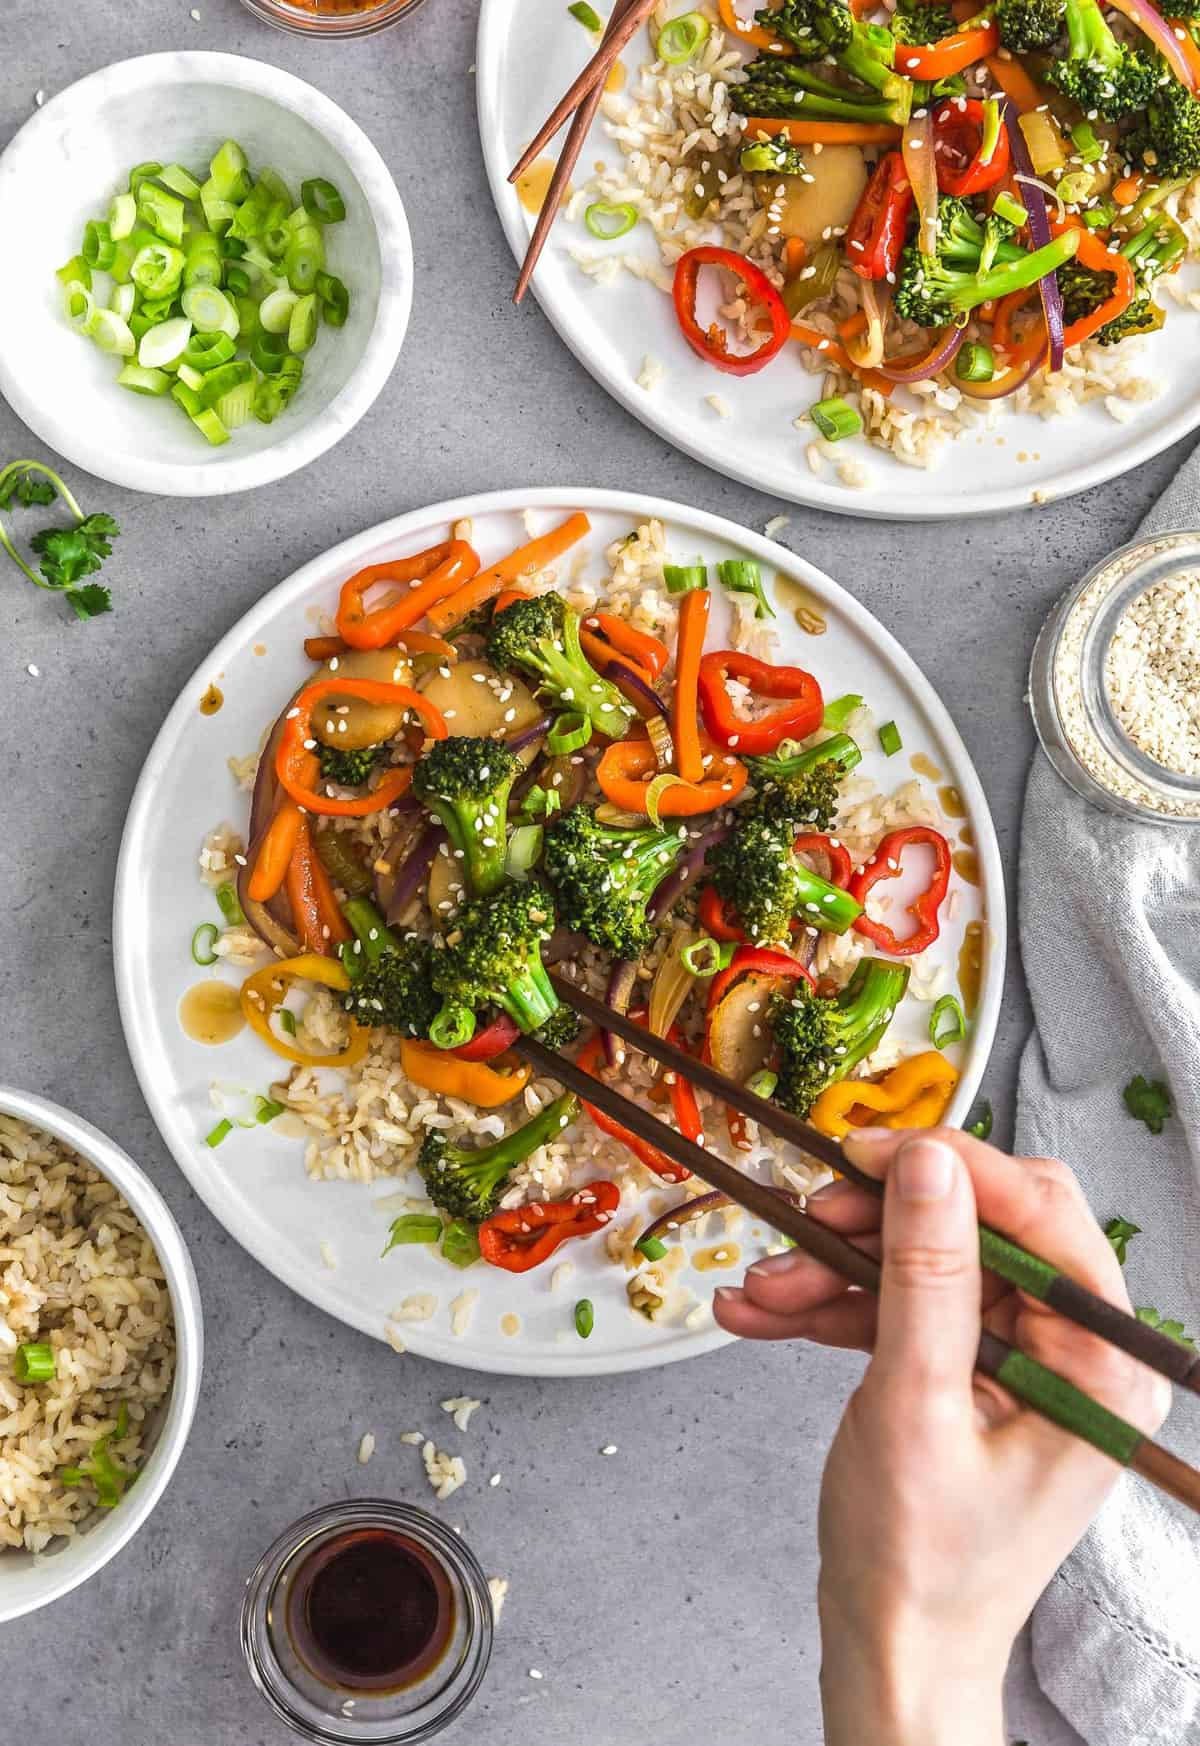 Asian Veggie Stir Fry, plant based, vegan, vegetarian, whole food plant based, gluten free, recipe, wfpb, healthy, healthy vegan, oil free, no refined sugar, no oil, refined sugar free, dairy free, veggies, vegetables, stir fry, dinner, rice, Asian recipes